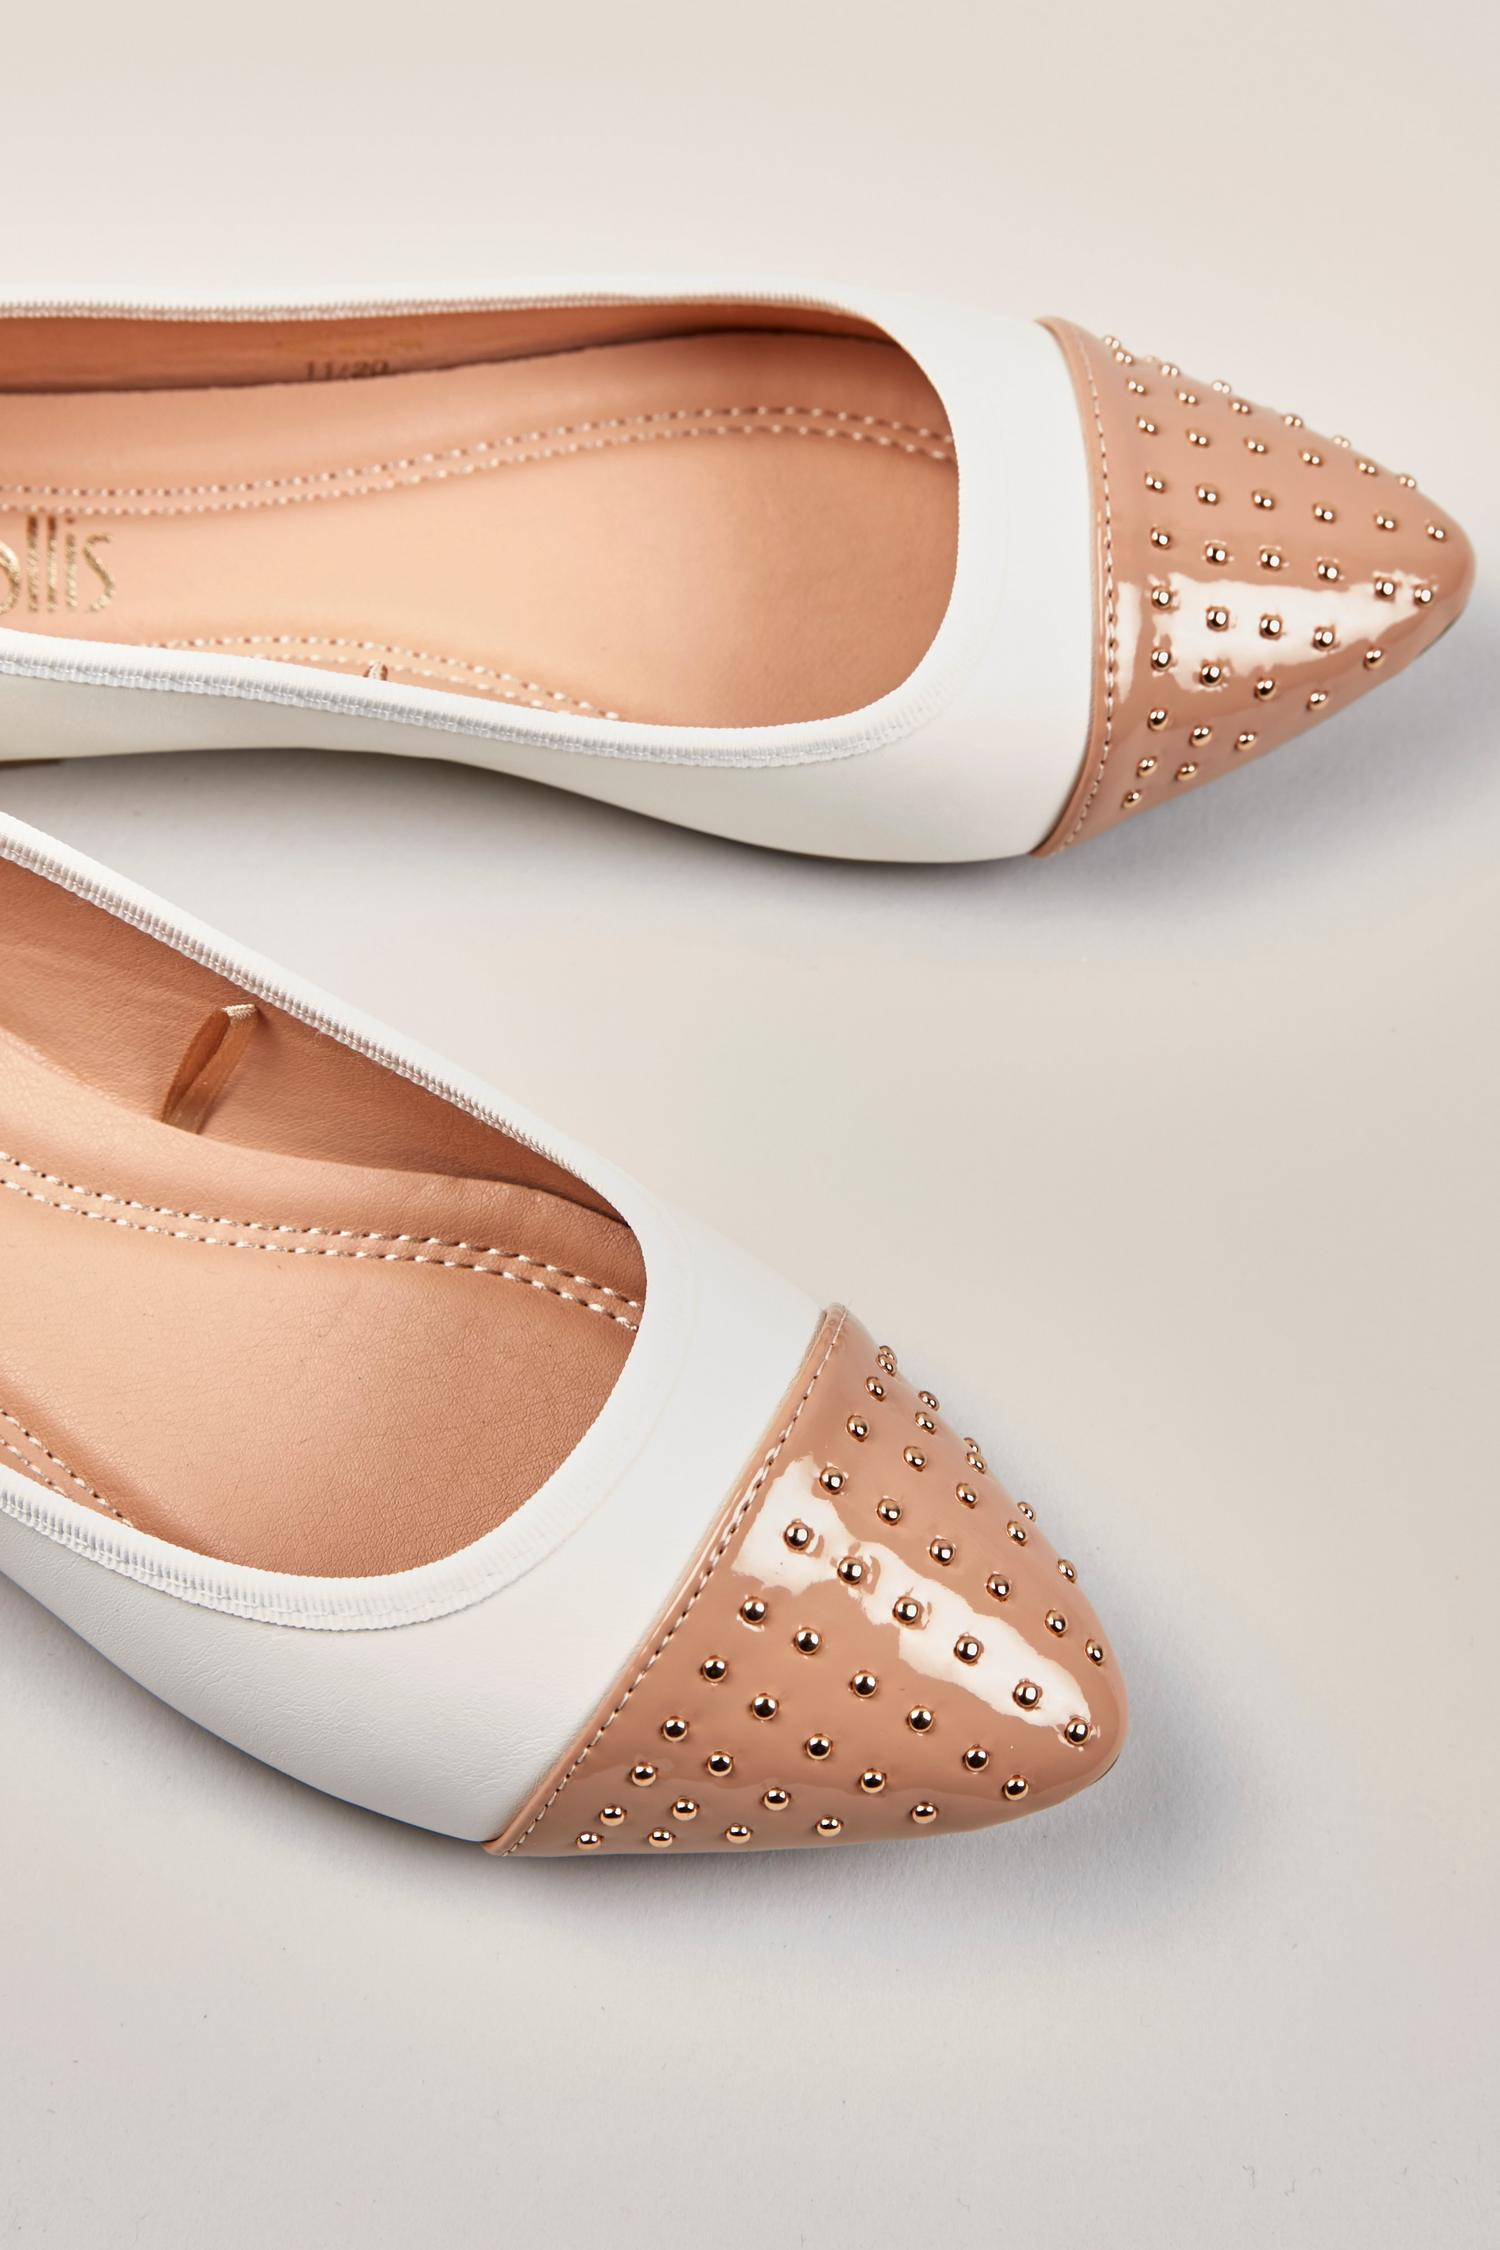 123 Cream Studded Pointed Ballet Pump image number 2